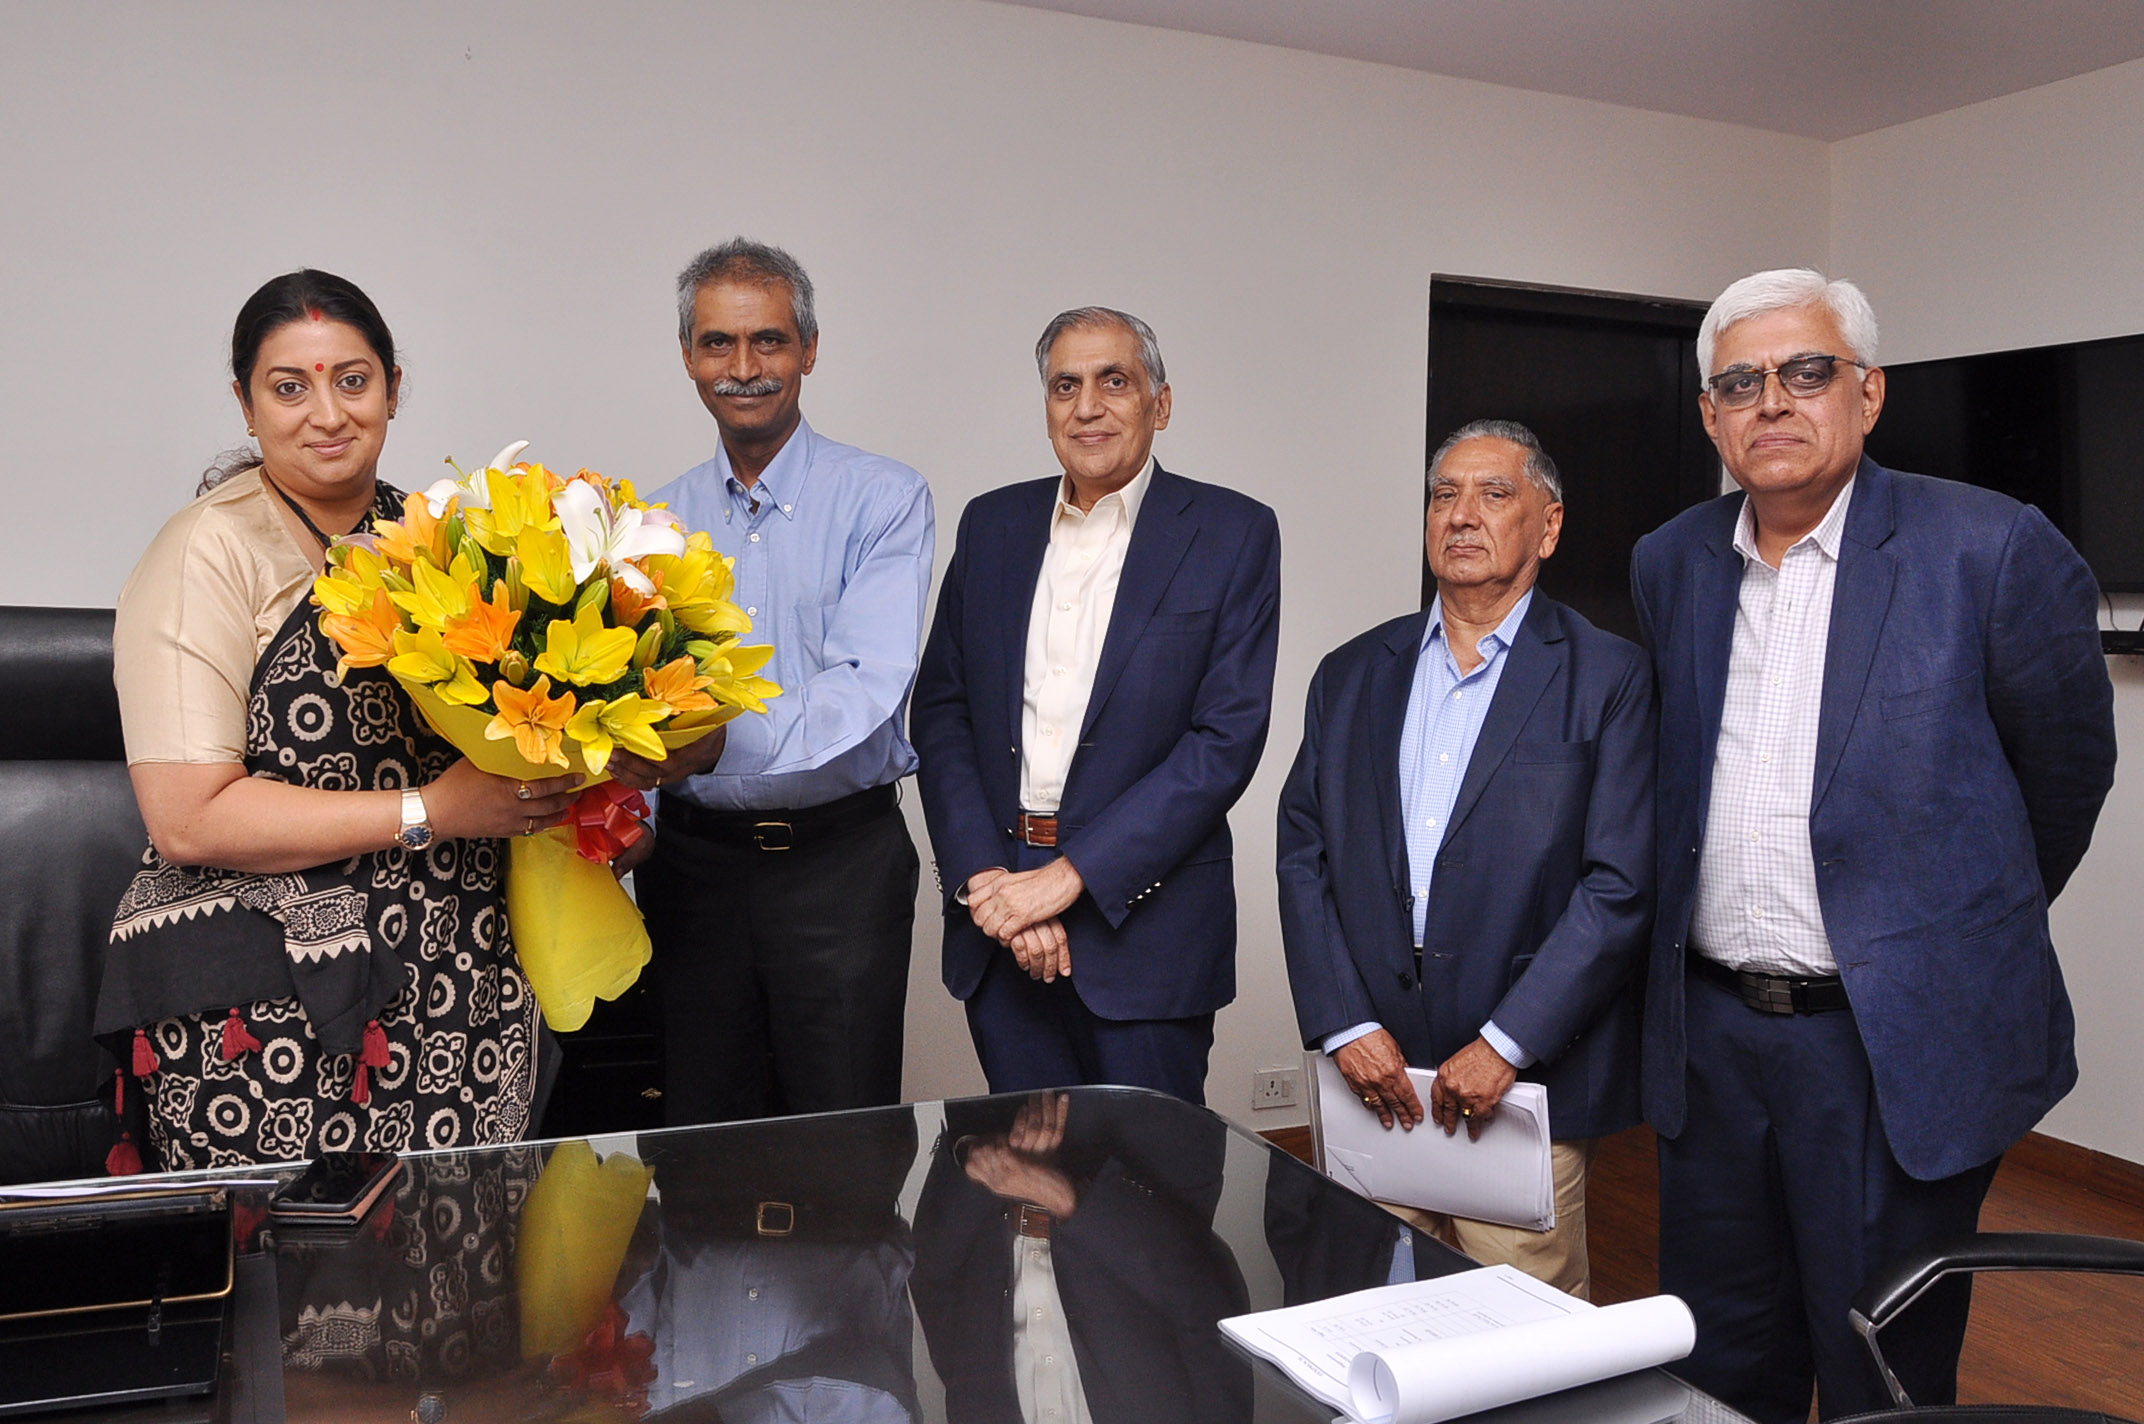 Hon'ble Minister of Textiles, Smt.  Smriti Zubin  Irani  being  greeted  by Dr. K V Srinivasan, Chairman, TEXPROCIL at her office in New Delhi on June 7, 2019.